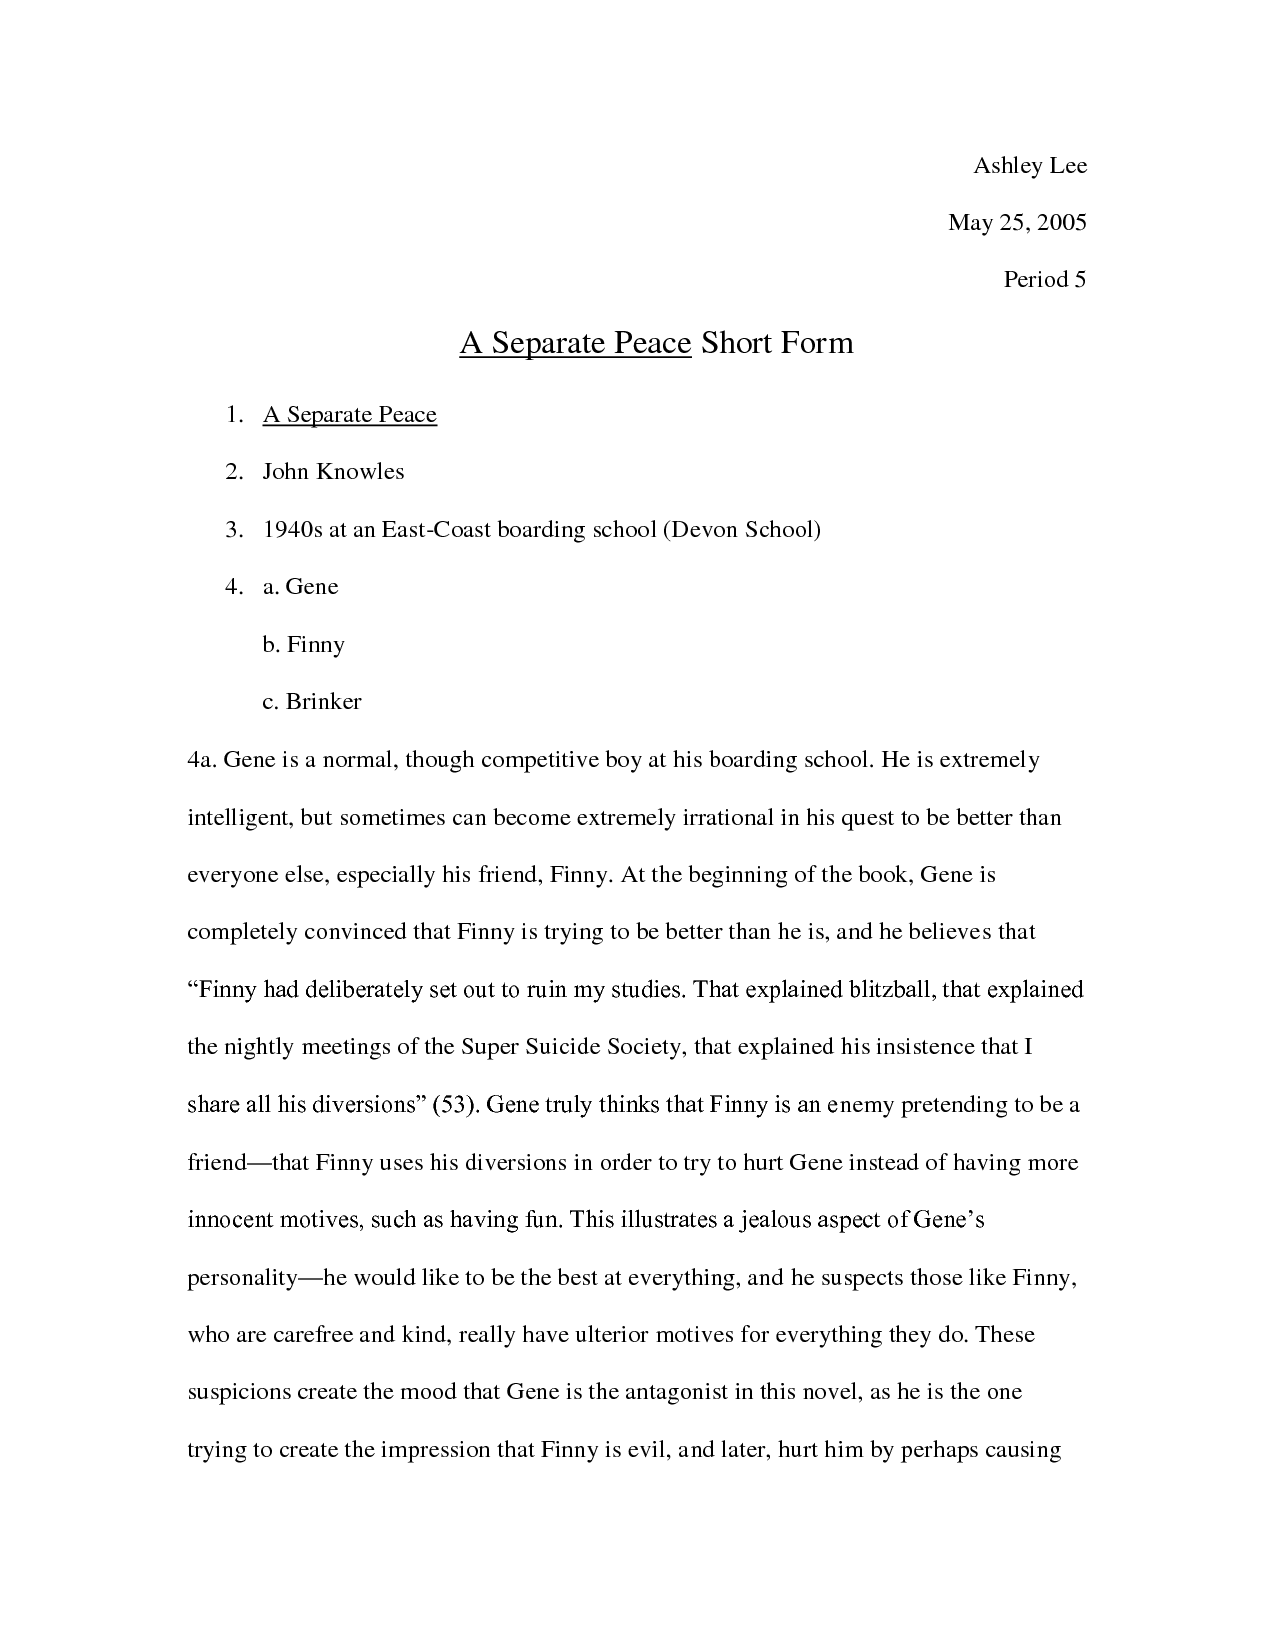 a separate peace essay jealousy